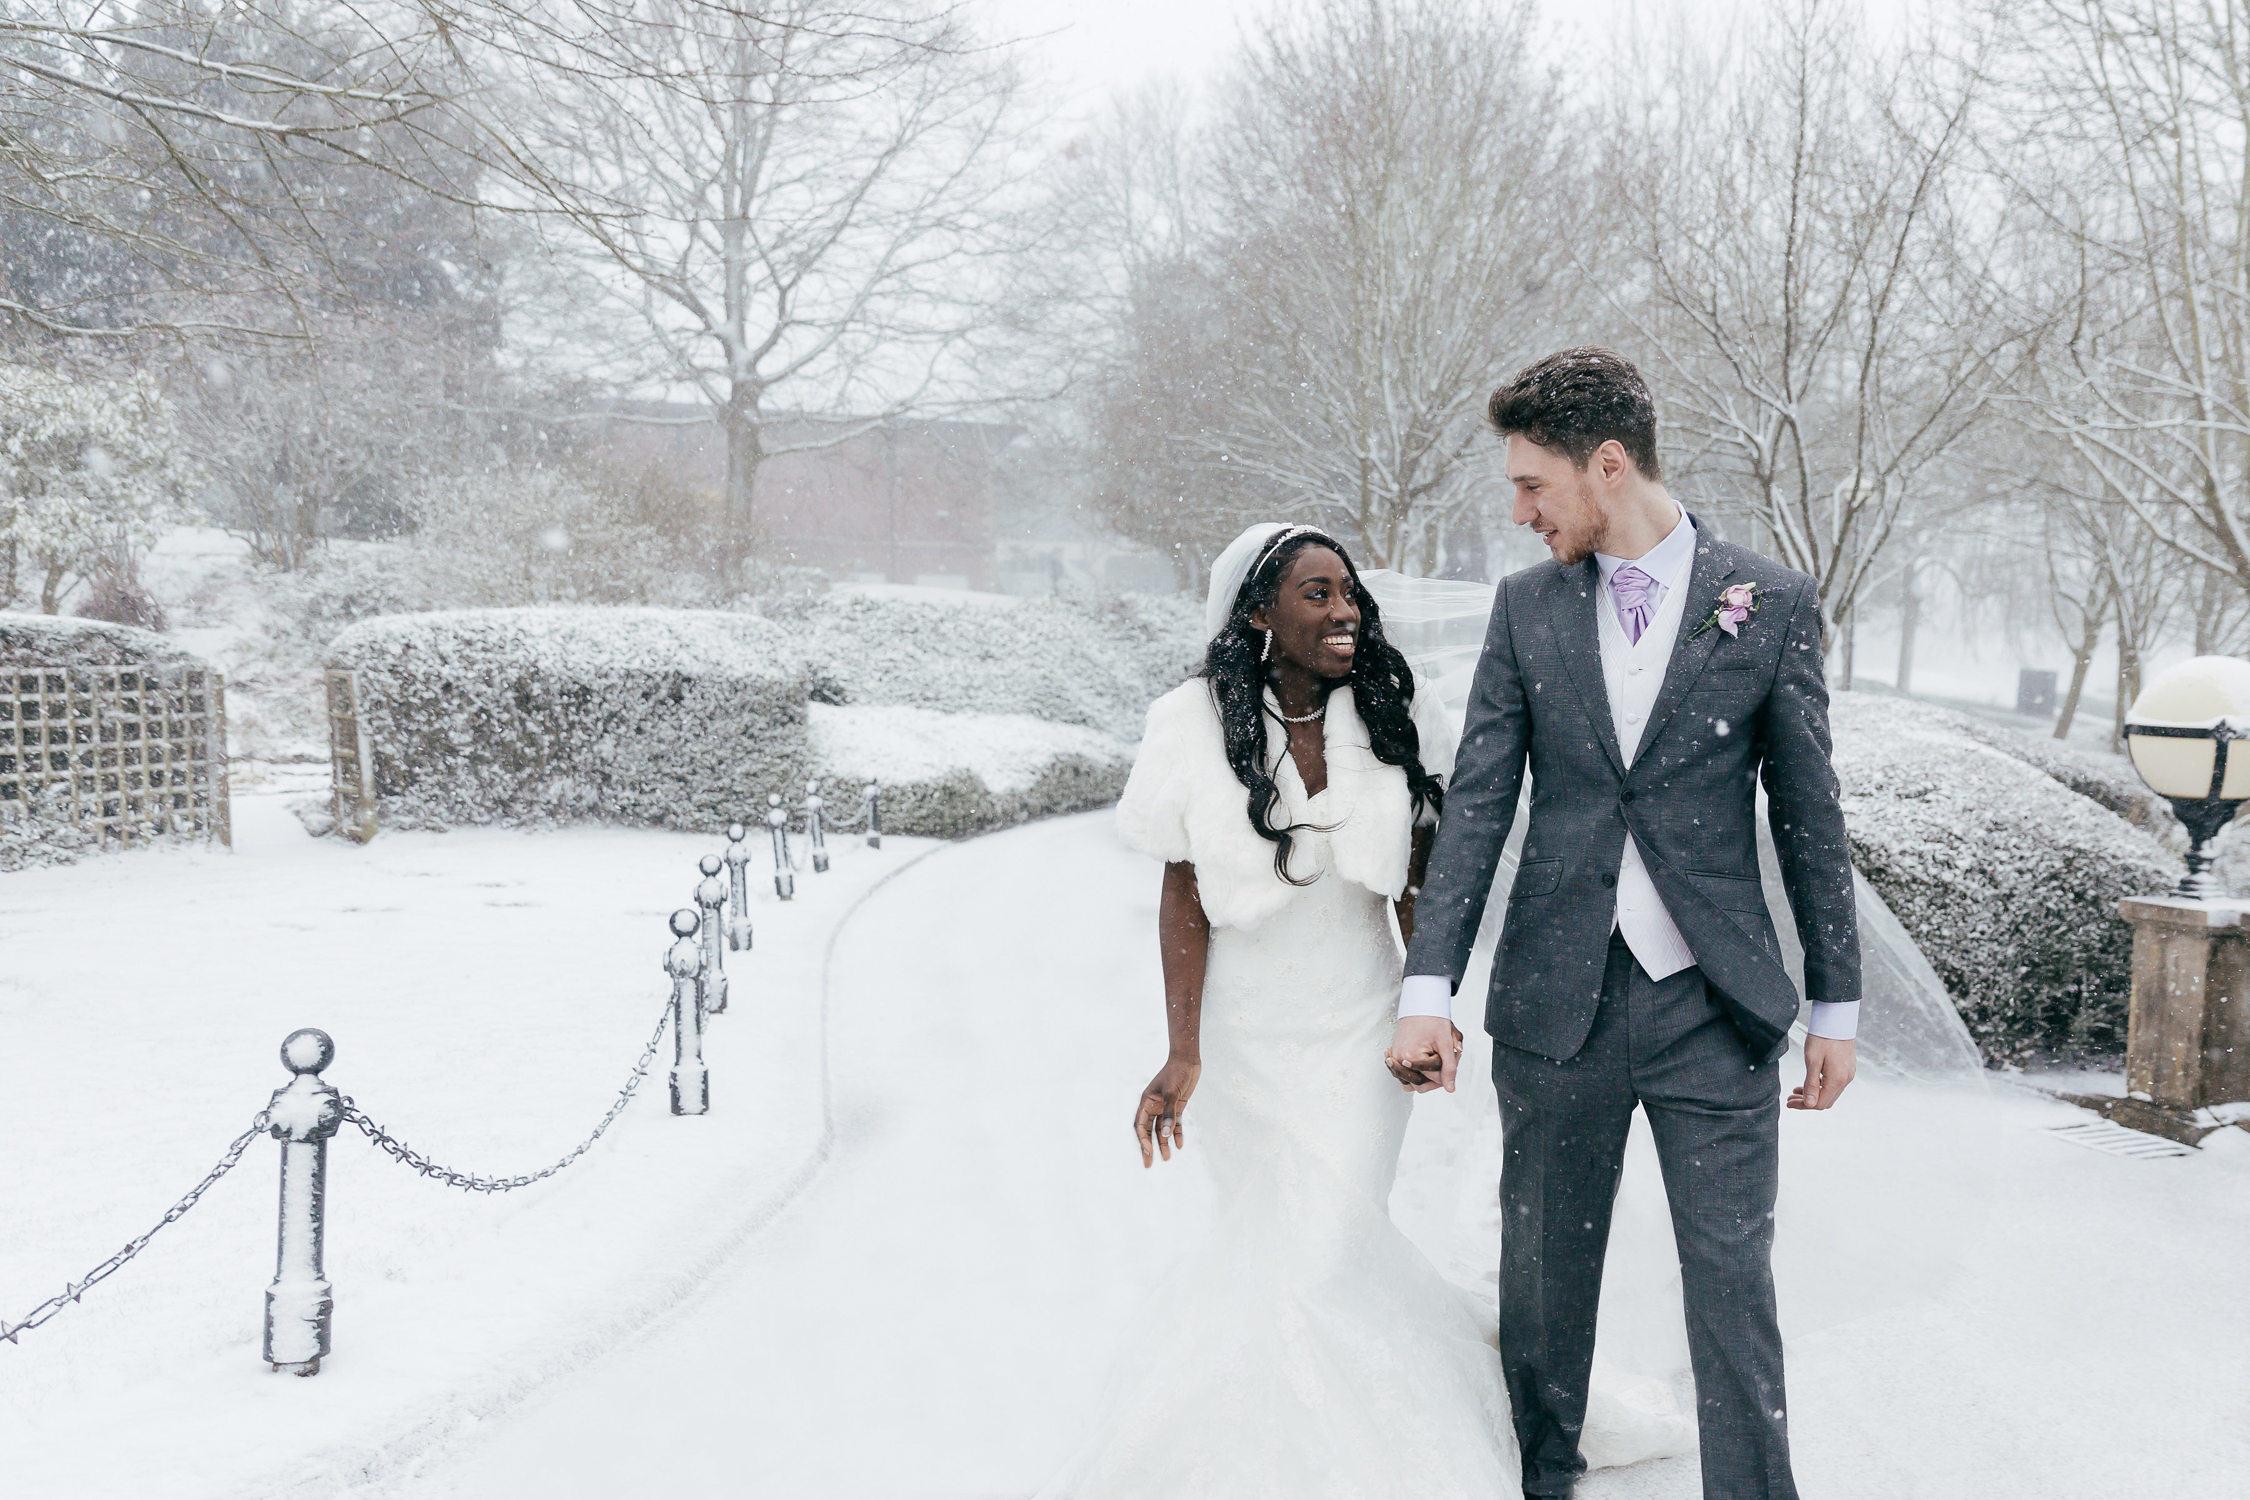 mixed race couple in snow on wedding day